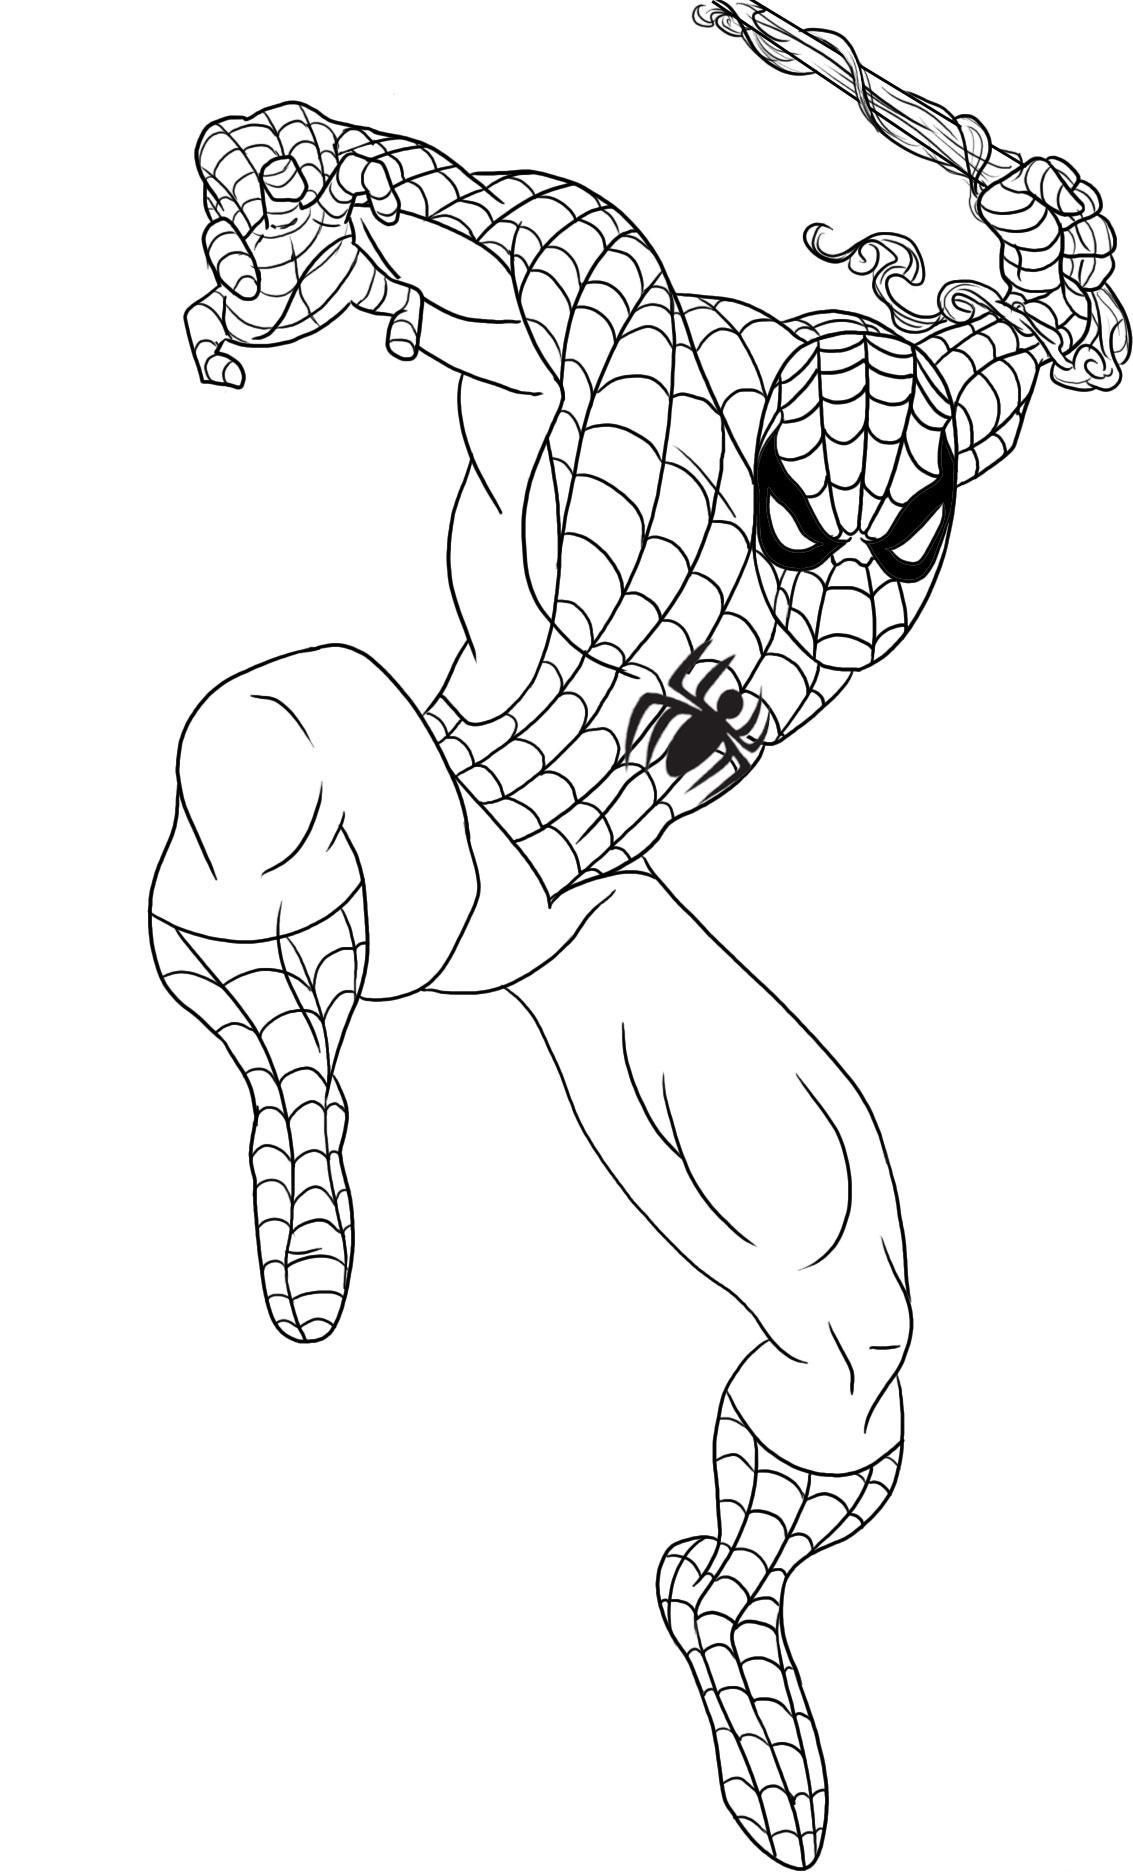 Printable-Coloring-Pages-Spiderman.jpg (1133×1872) | Coloring pages ...